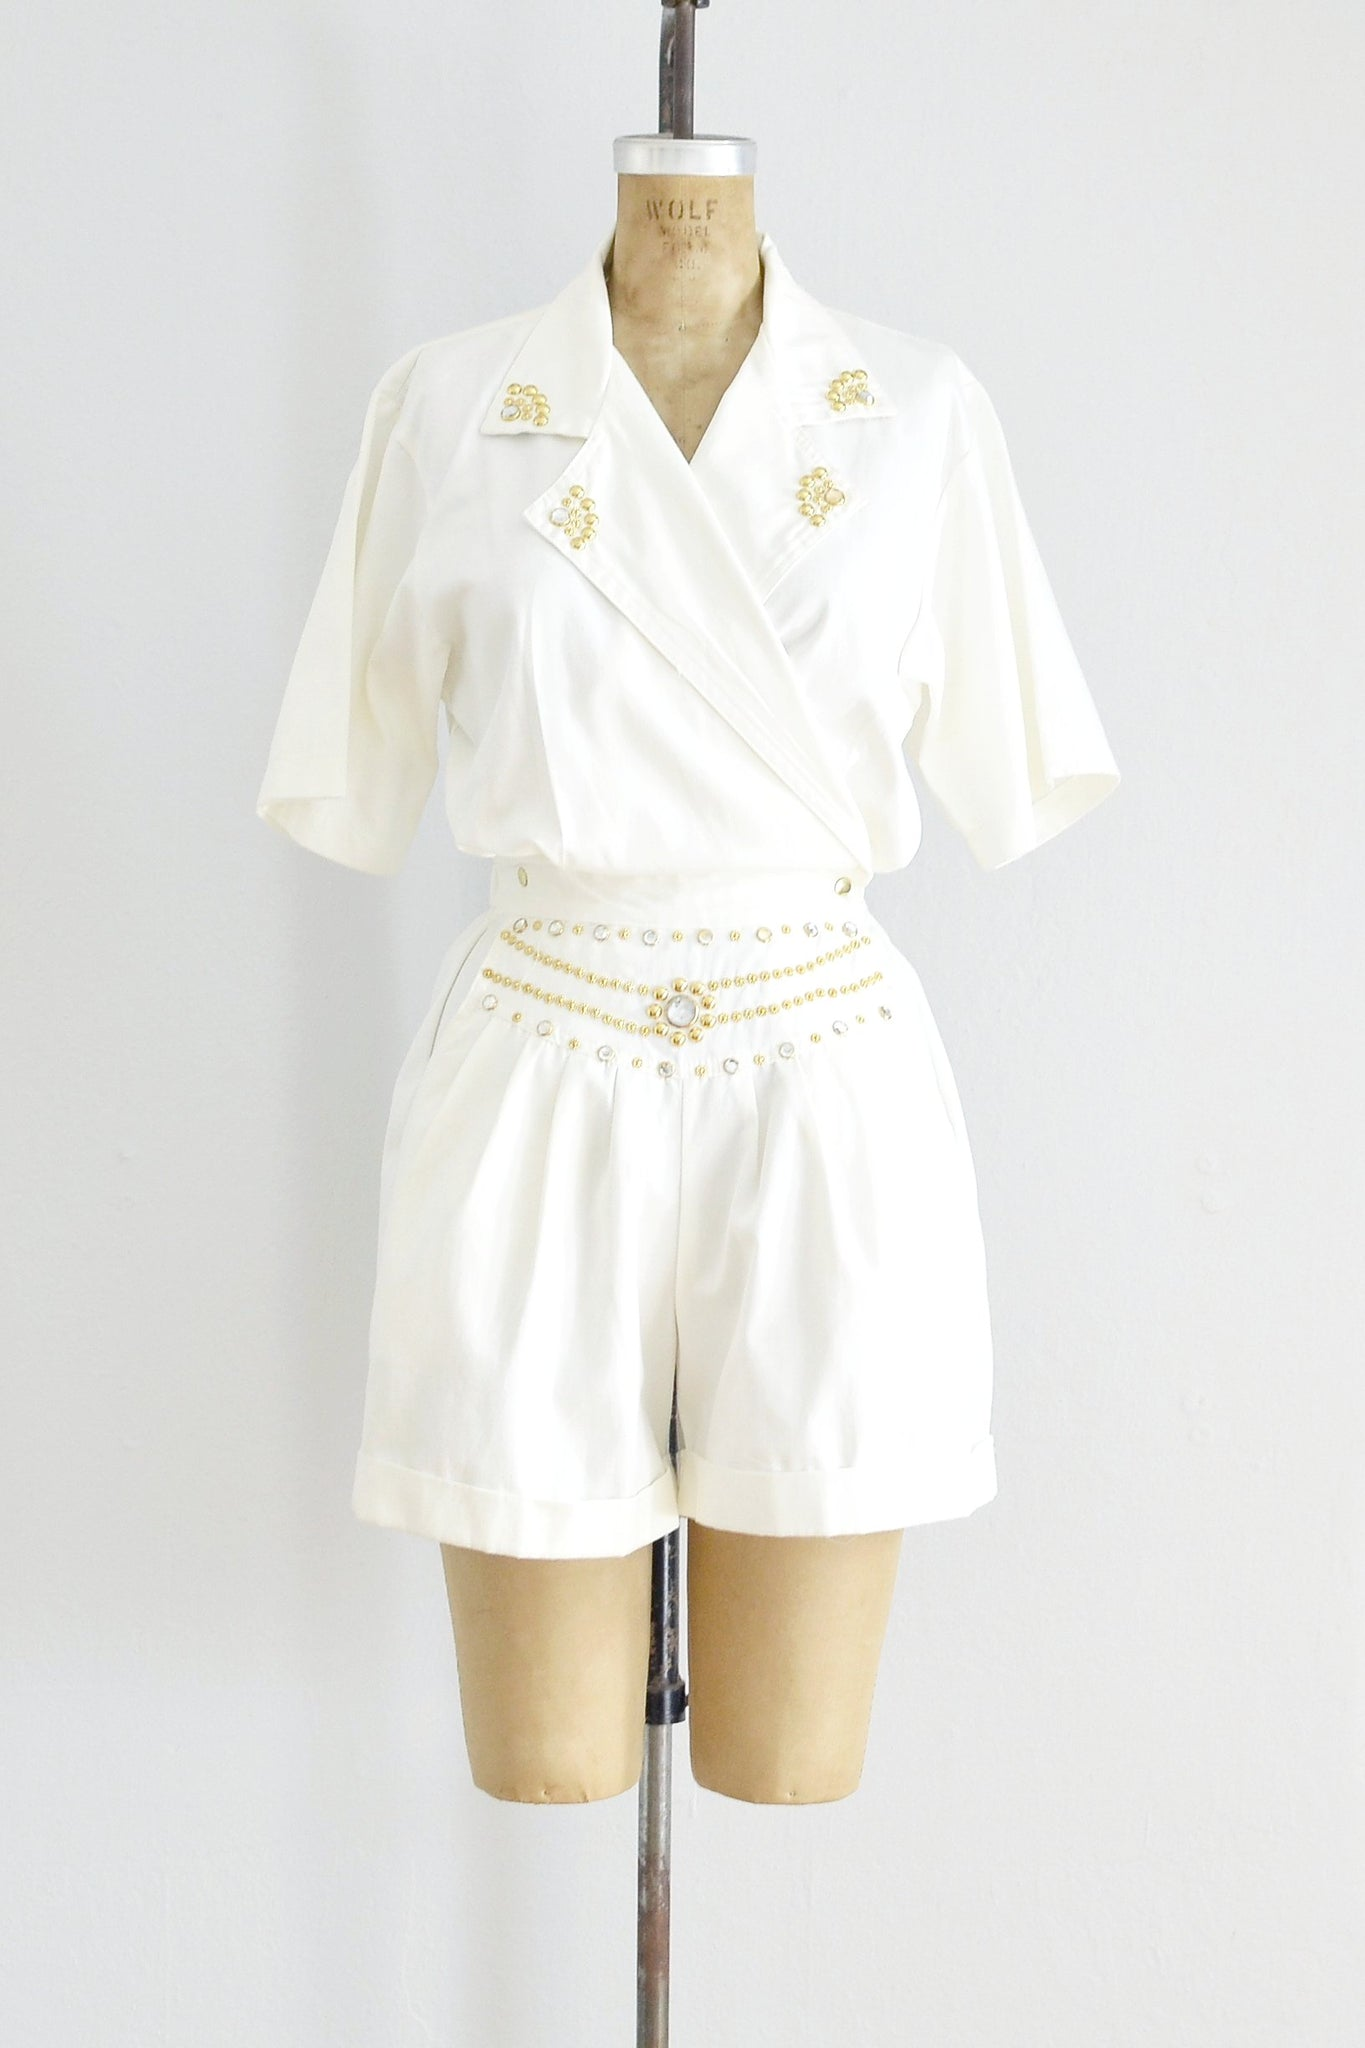 Jeweled Romper - Pickled Vintage